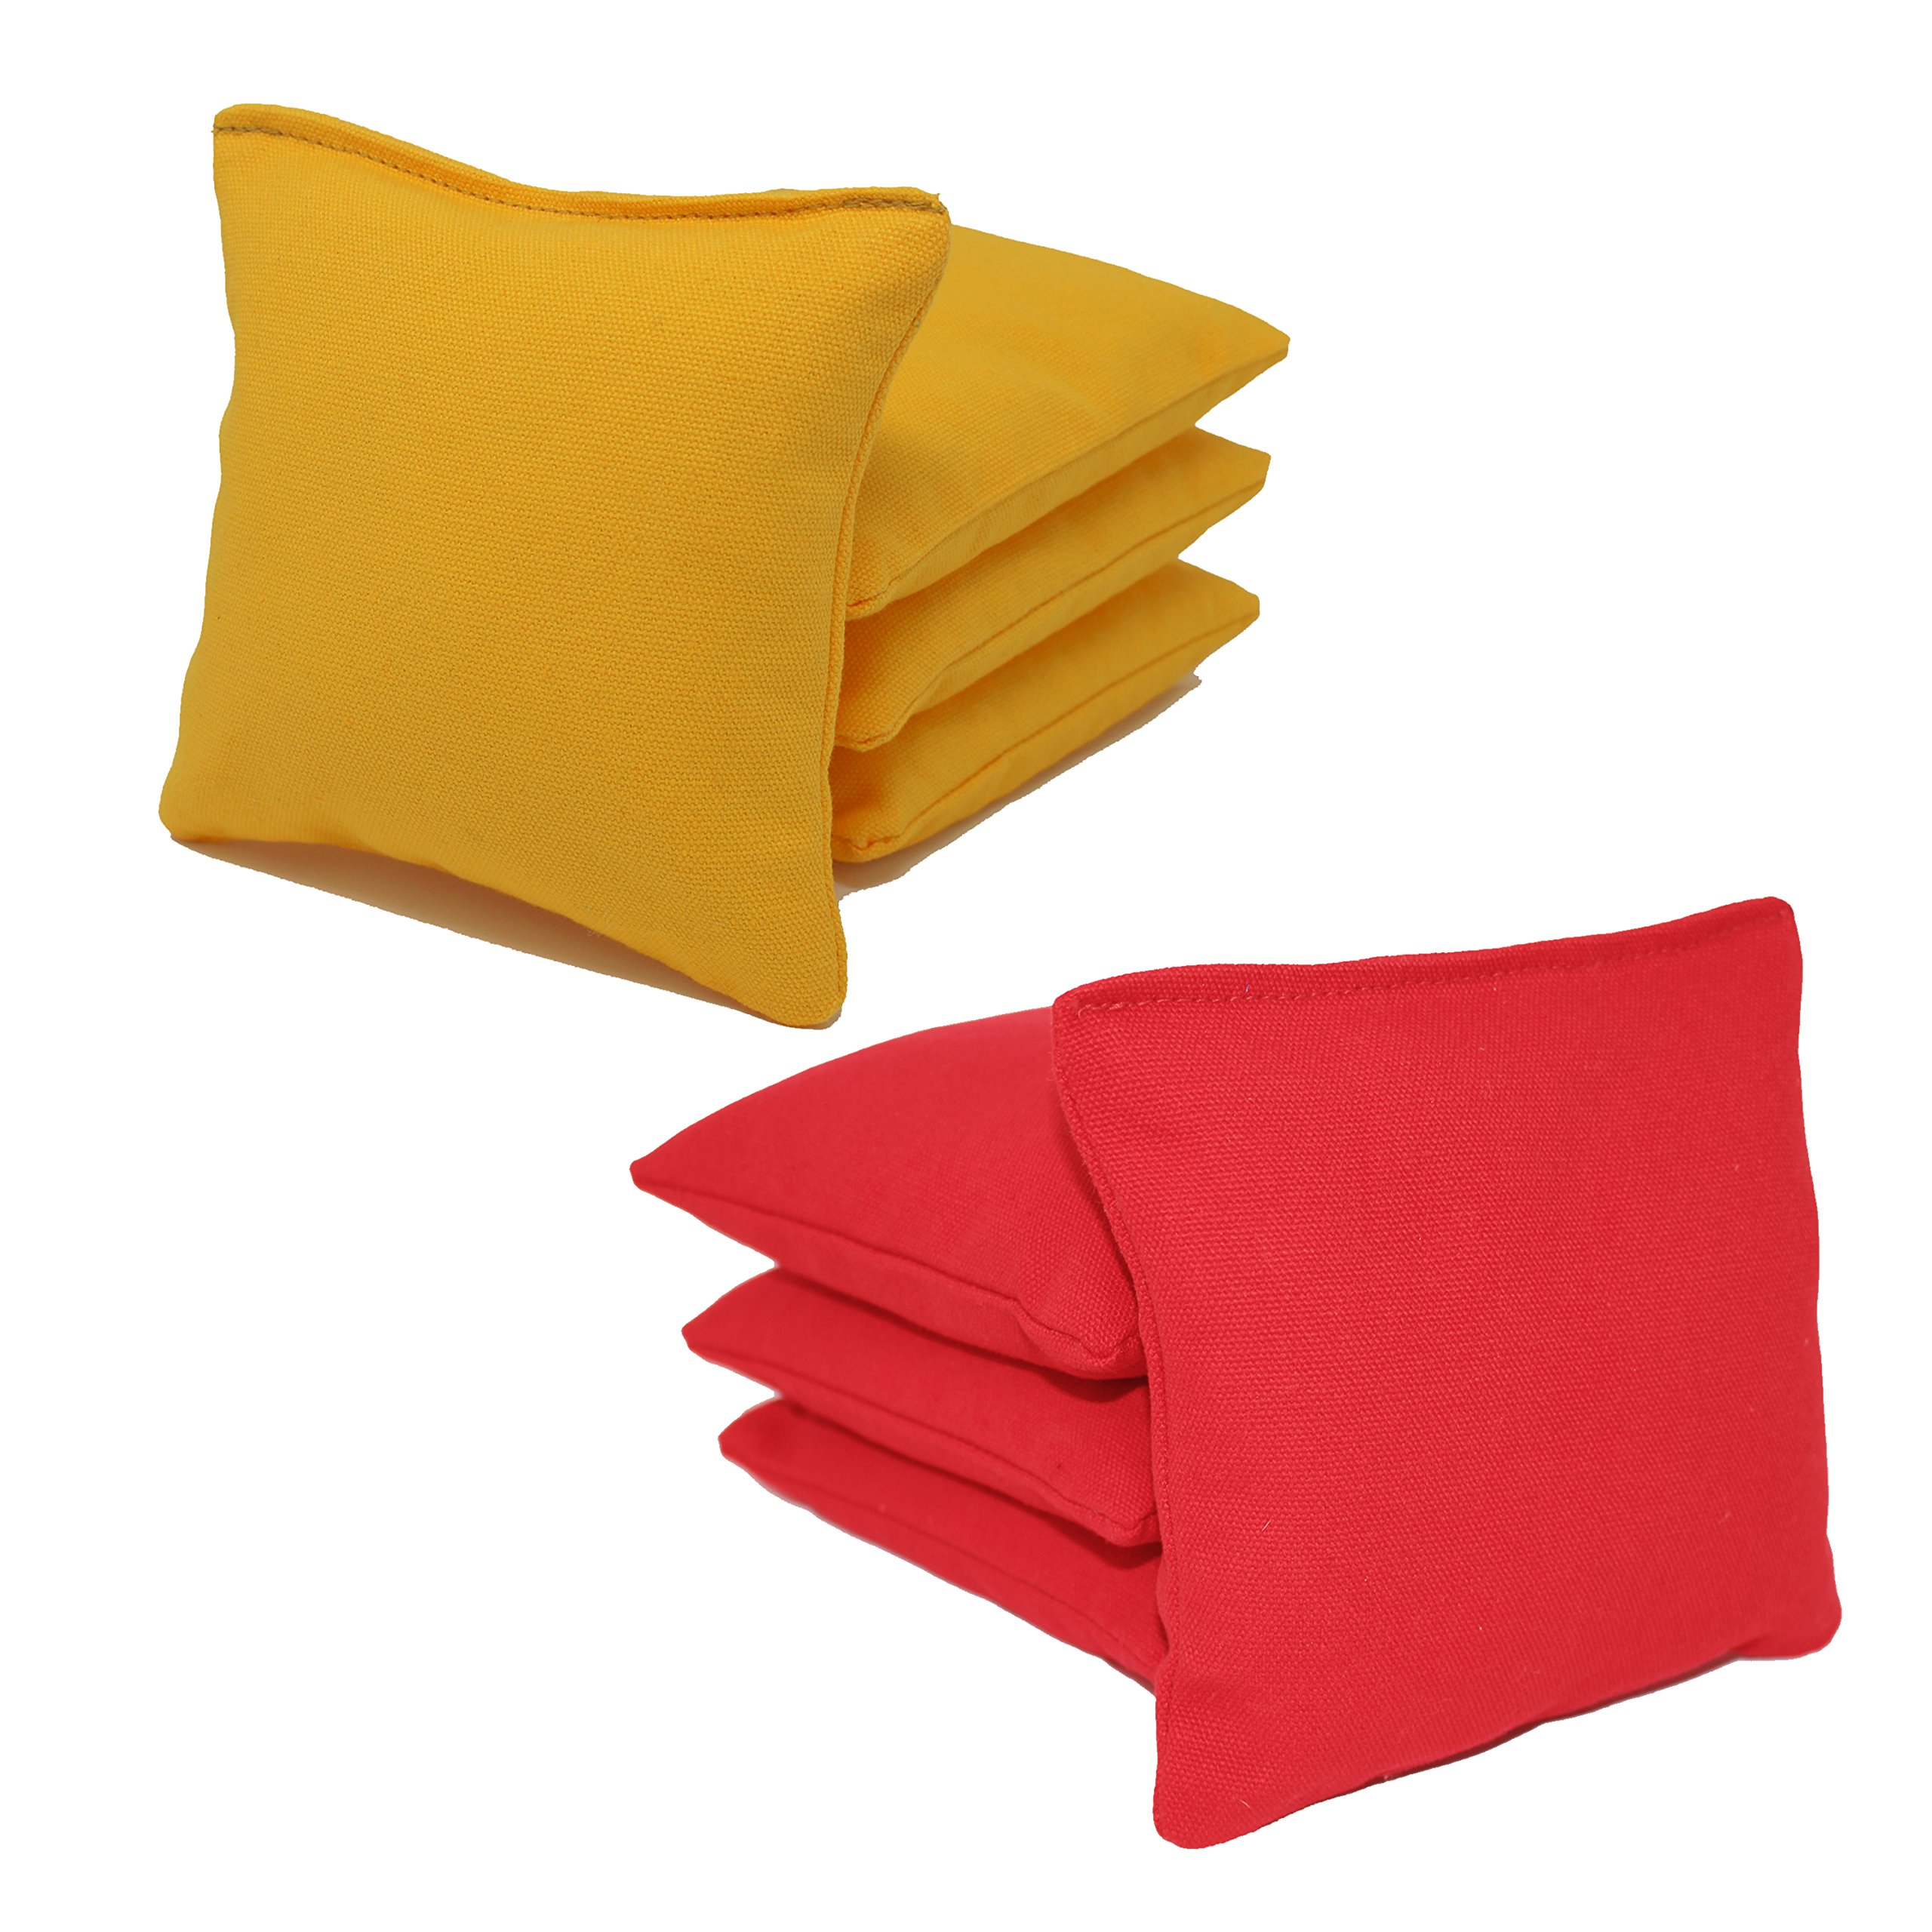 Free Donkey Sports ACA Regulation Cornhole Bags (Set of 8) (Red and Yellow) 25 Colors to Choose from. by Free Donkey Sports